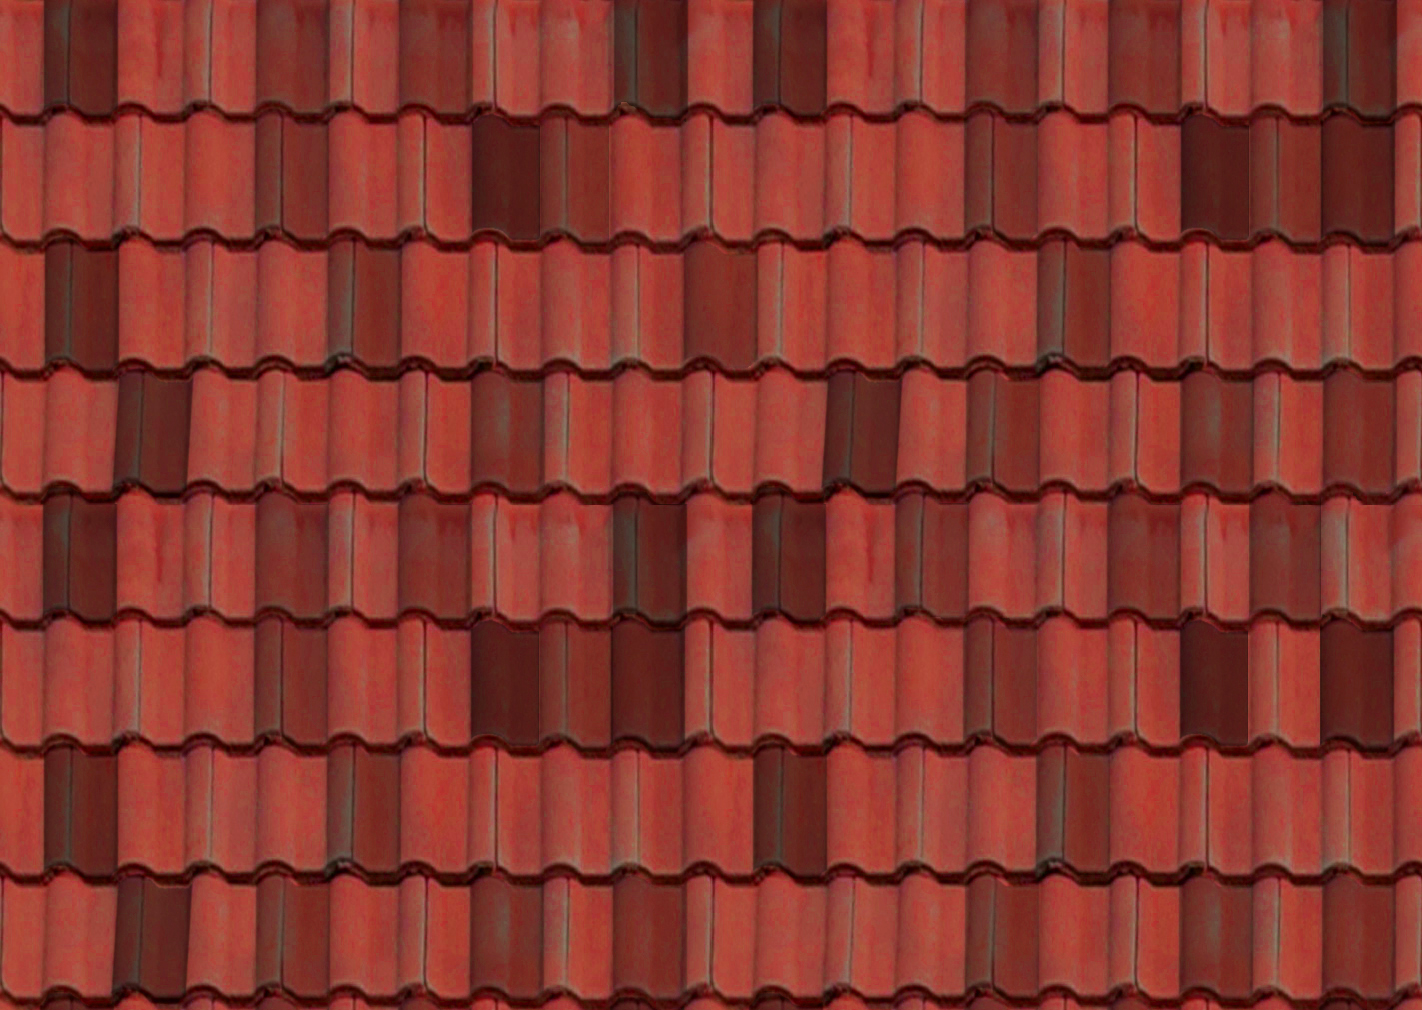 Affordable New Red Clay Roof Tile Texture Sheet Download With Roof Tile. Sc  1 St Movie House.biz